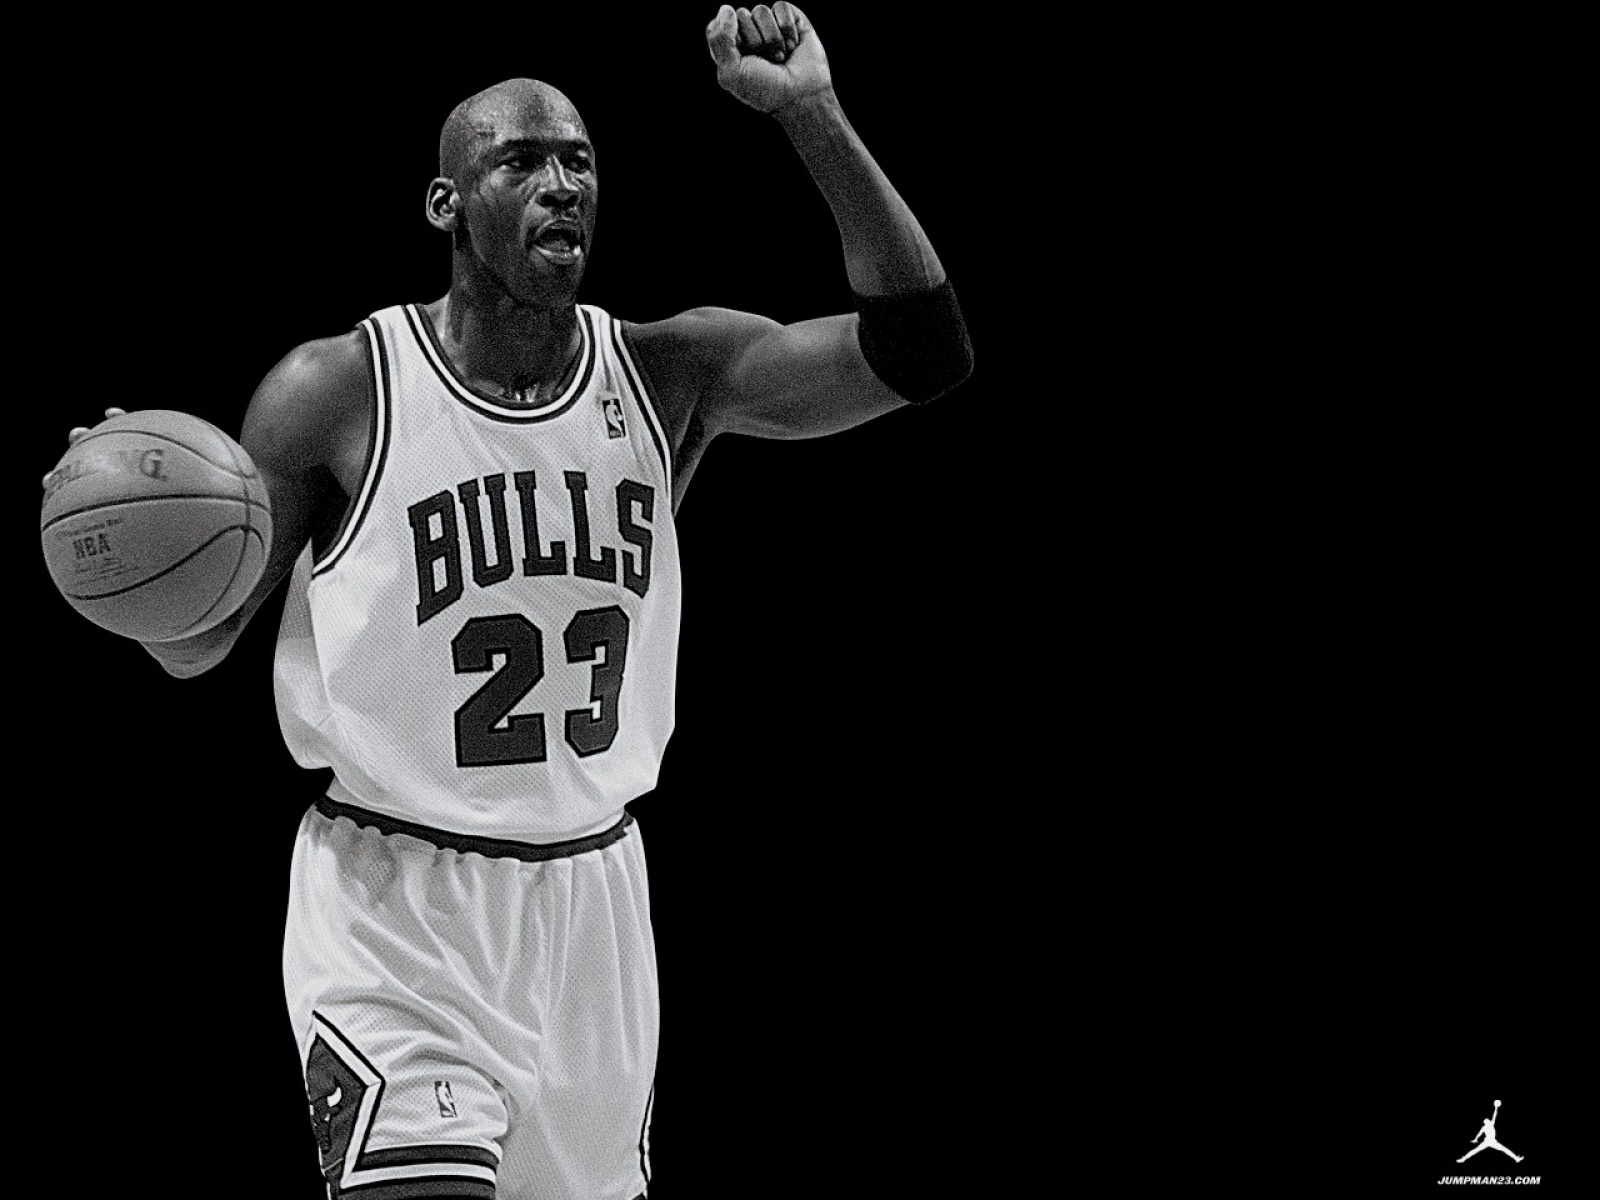 Pin free download michael jordan wallpaper 28957 hd wallpapers on - Jordan Wallpaper Michael Jordan Wallpaper Michael Jordan Wallpaper